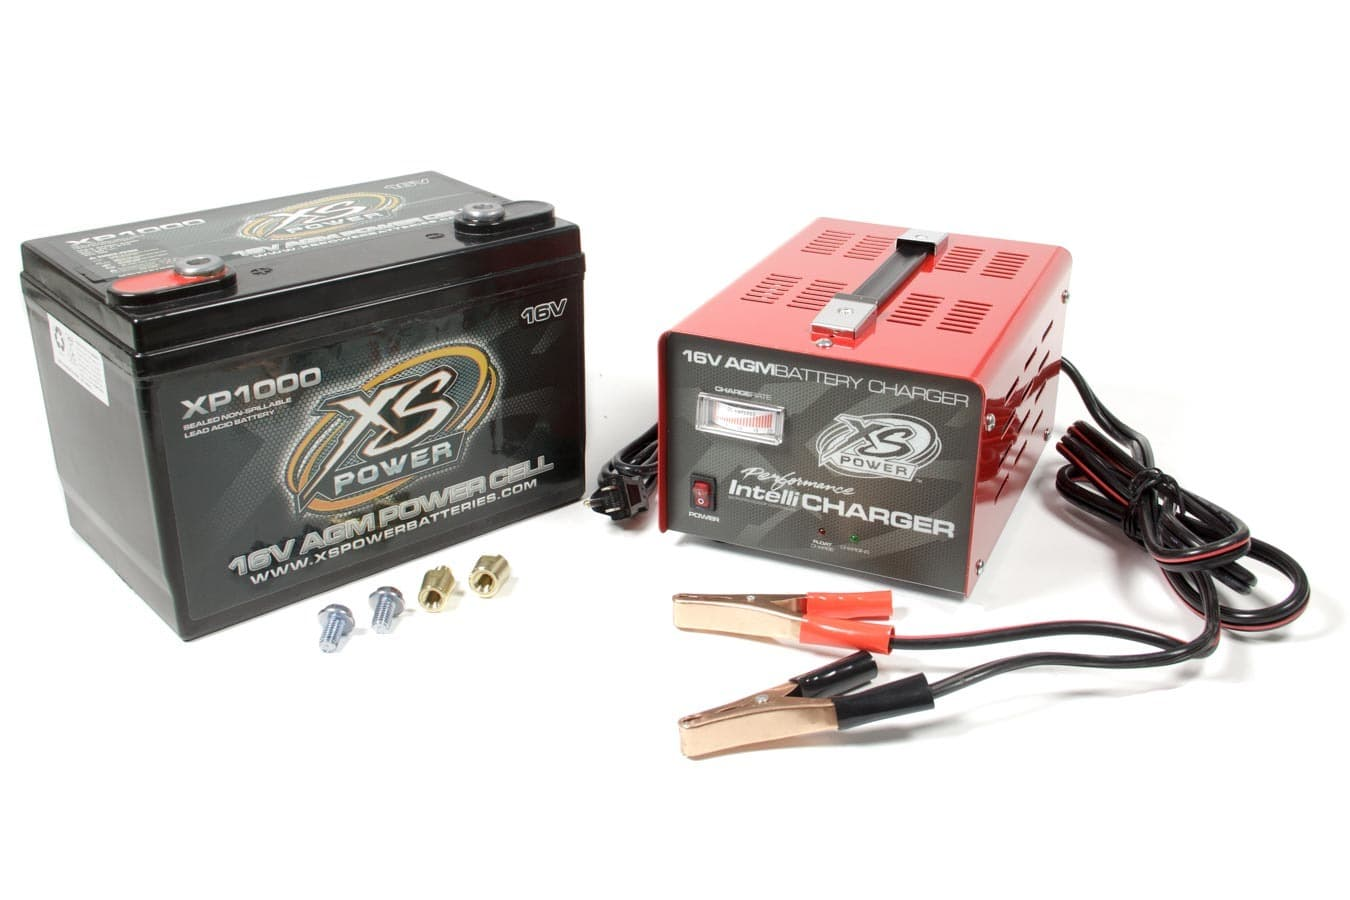 XSPXP1000CK2 XP 1000 AGM Battery And 20 Amp XSP1004 Intellicharger